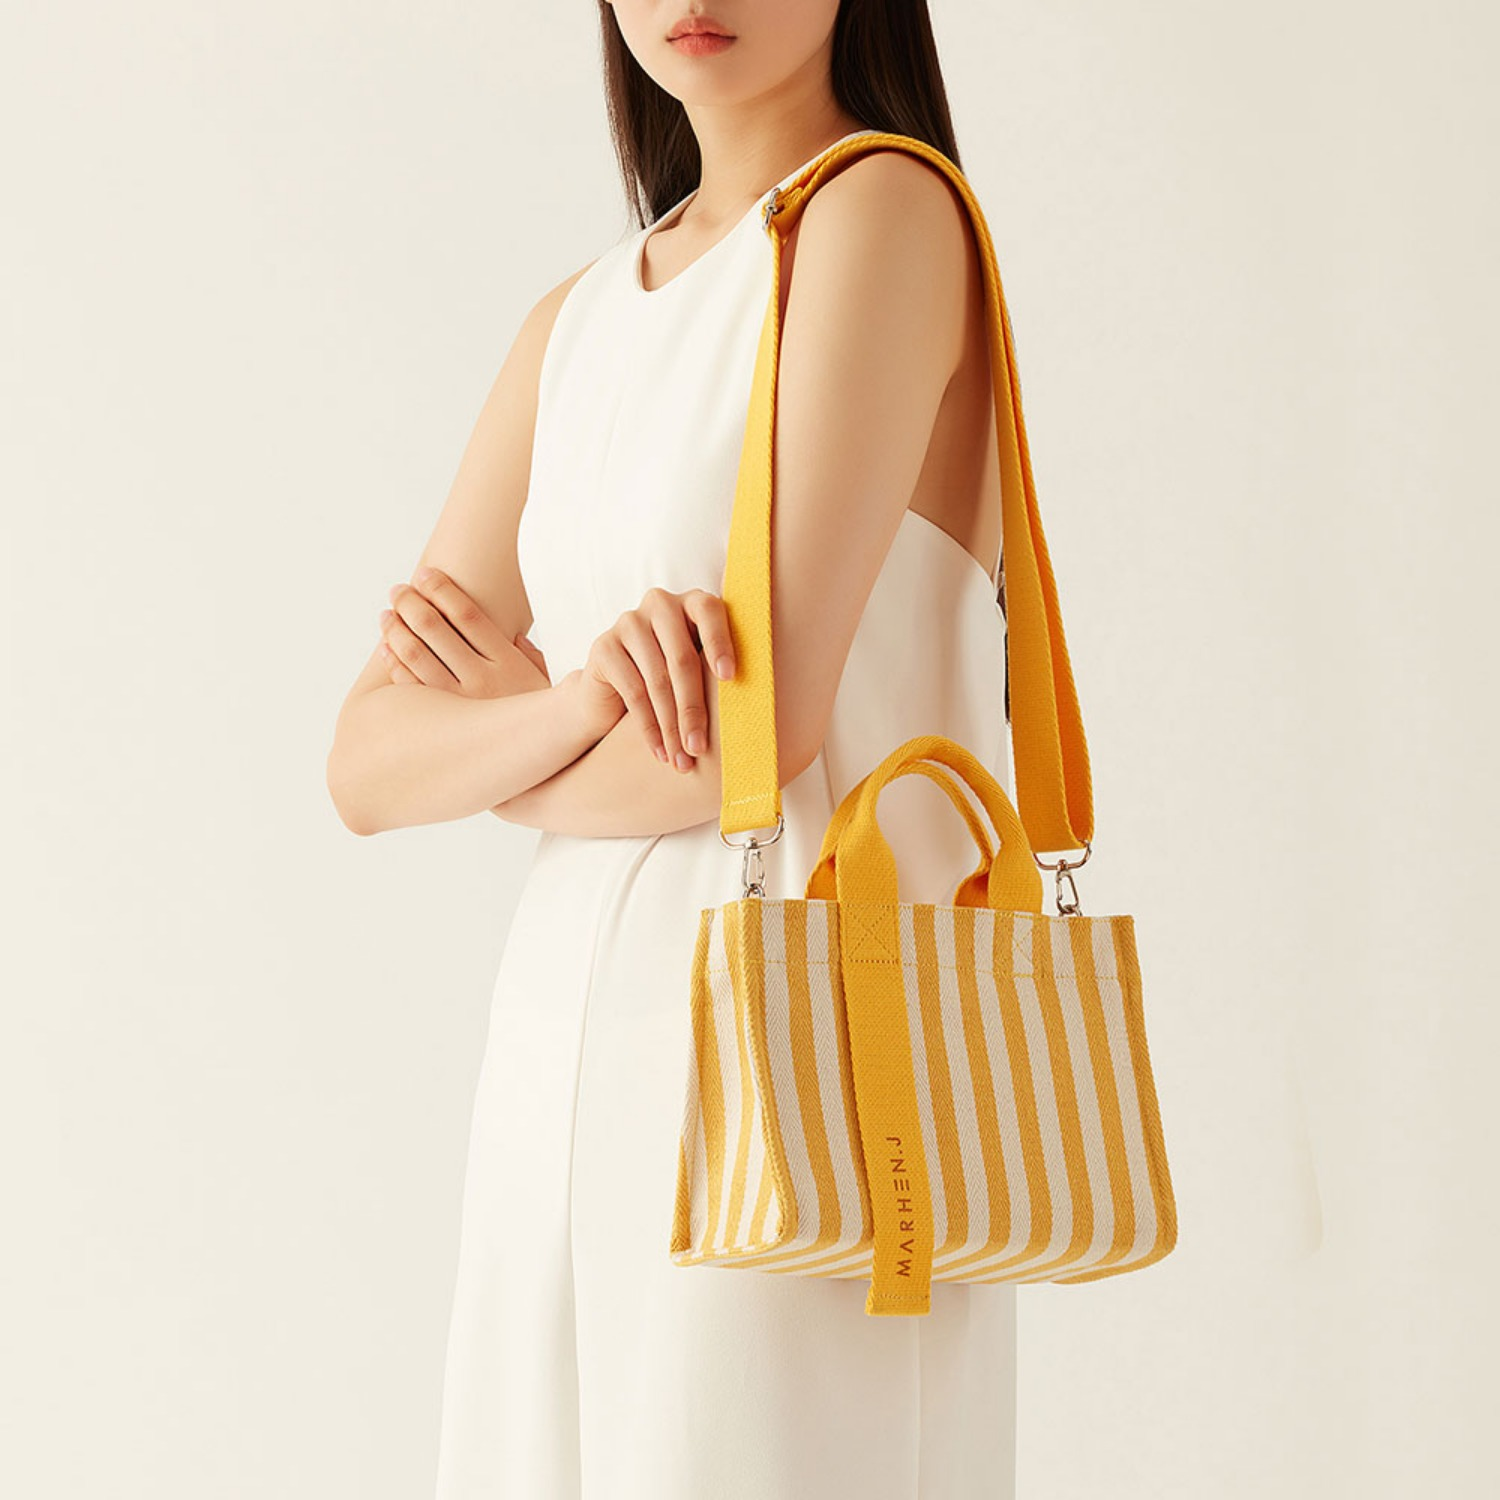 RICO MINI LEMON YELLOW (Length adjustable strap is included)